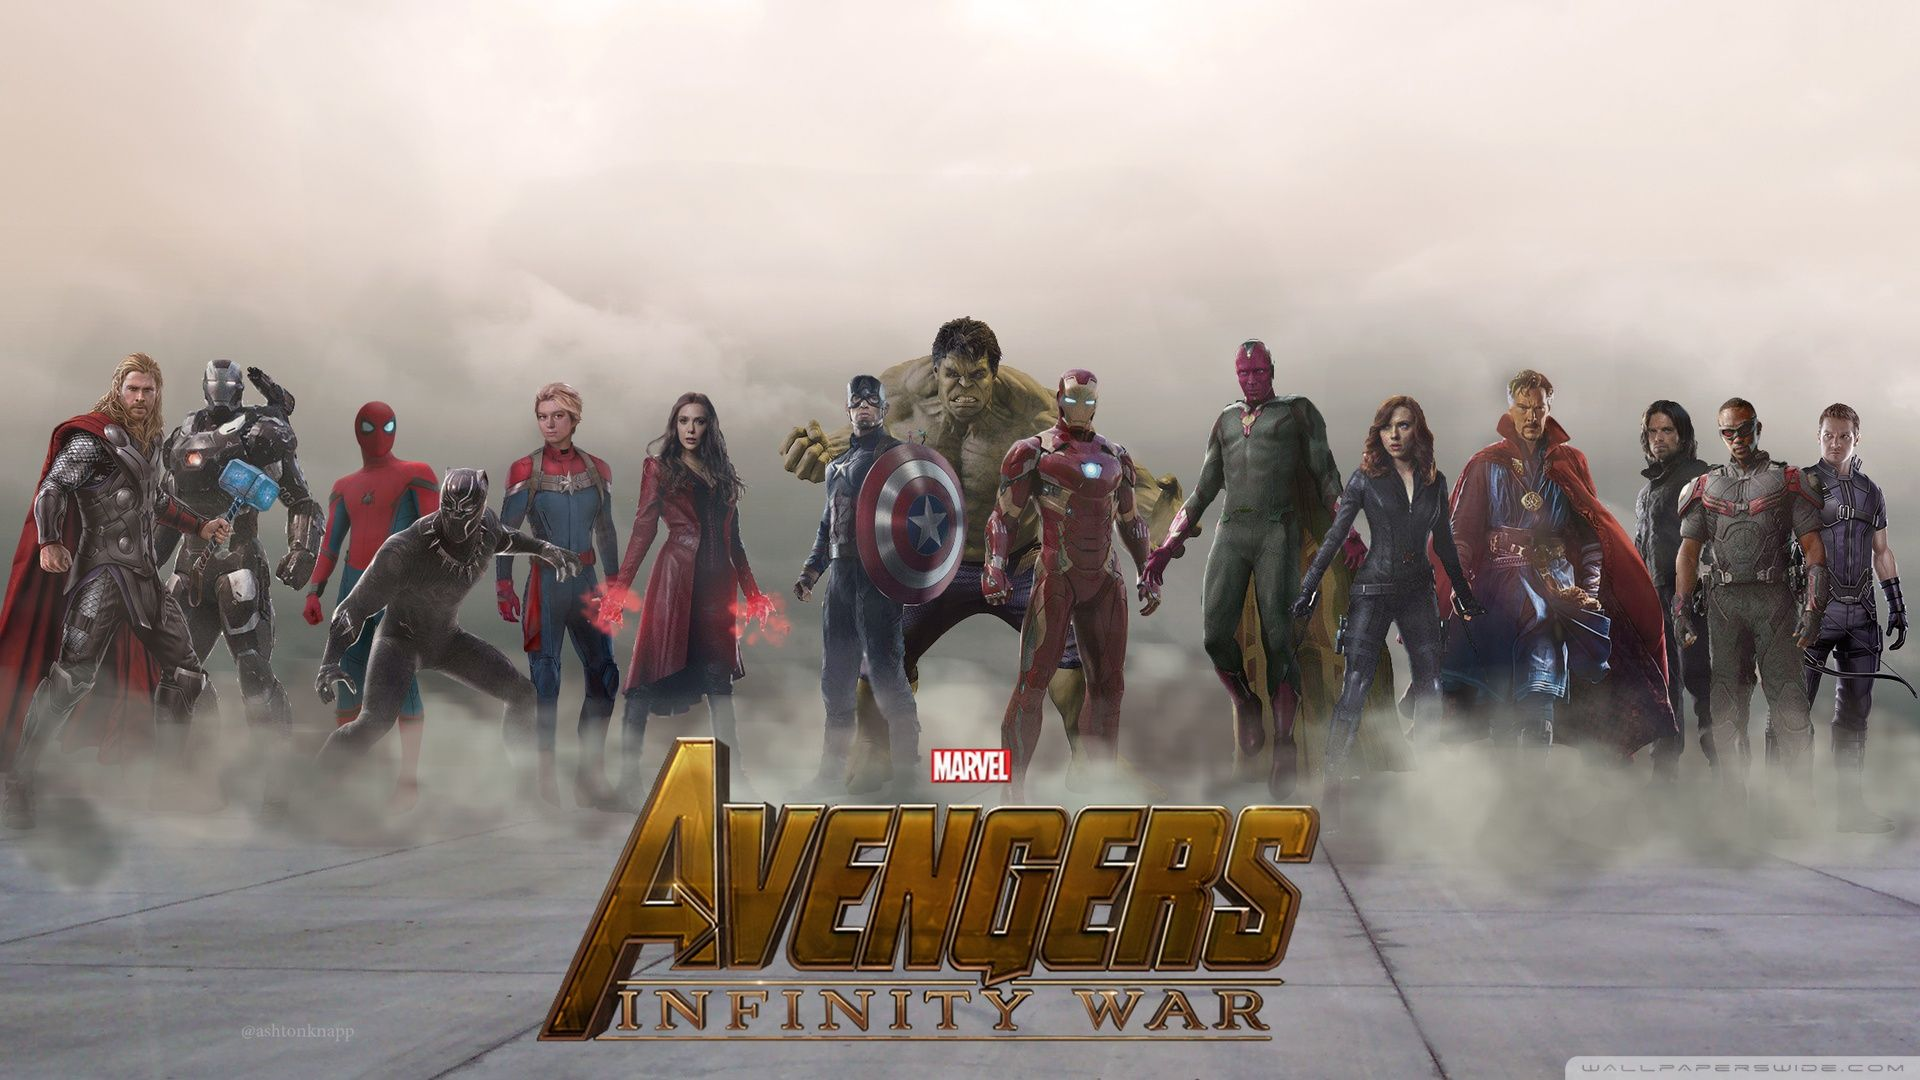 2018 Avengers Laptop Wallpapers - Top Free 2018 Avengers